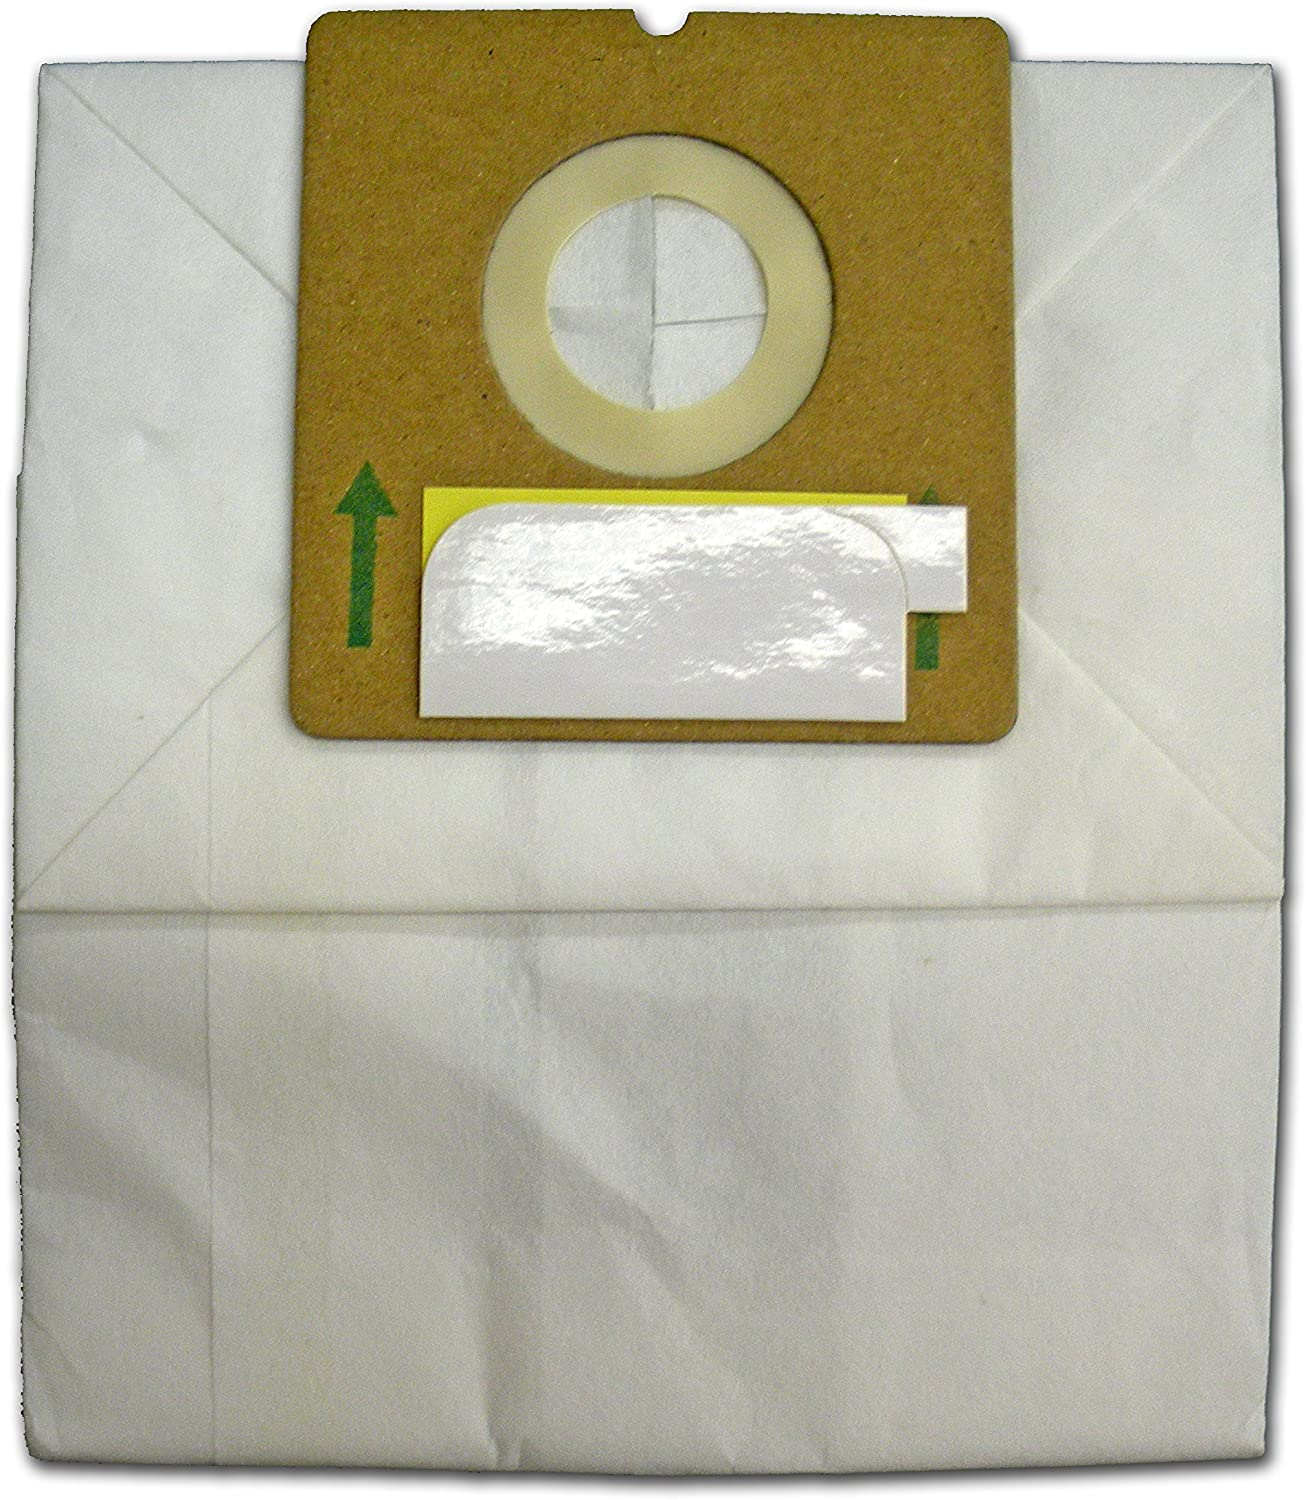 5 Bags and 2 Filters EnviroCare Replacement Micro Filtration Vacuum Cleaner Dust Bags for Hoover R30 Canisters